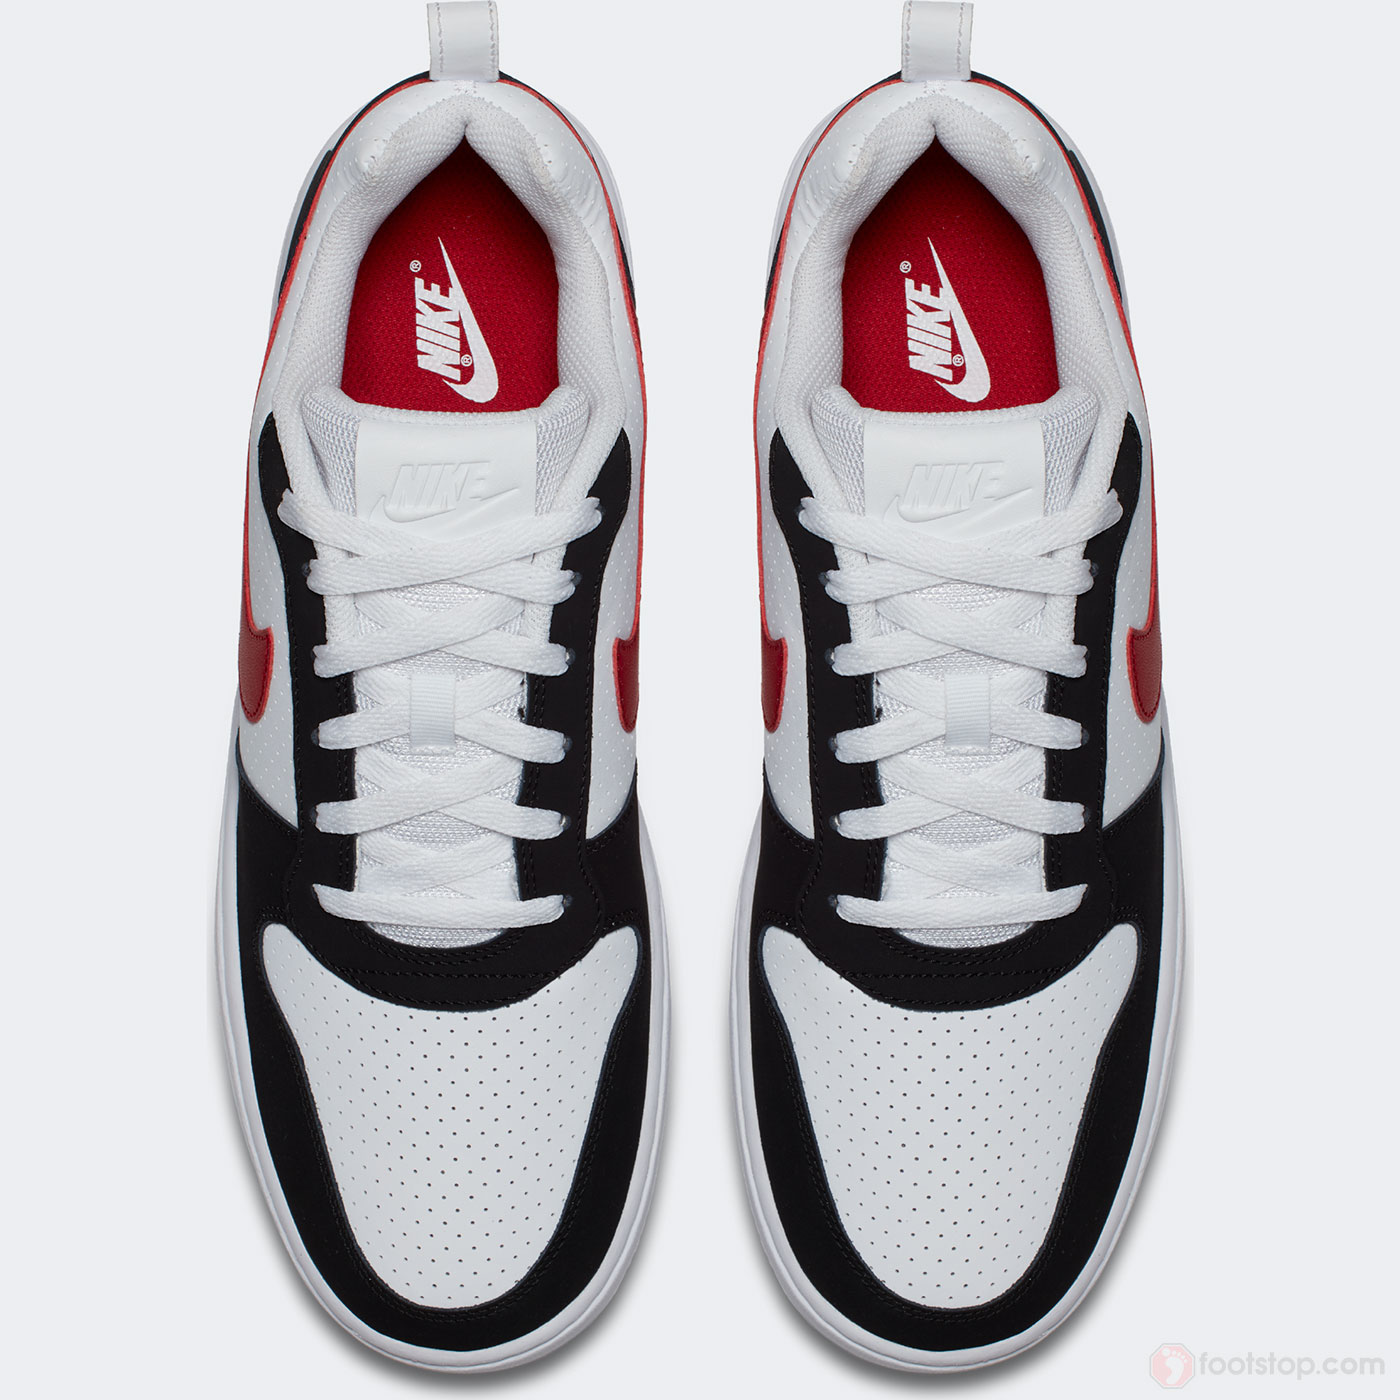 nike court borough low (838937 102) footstop